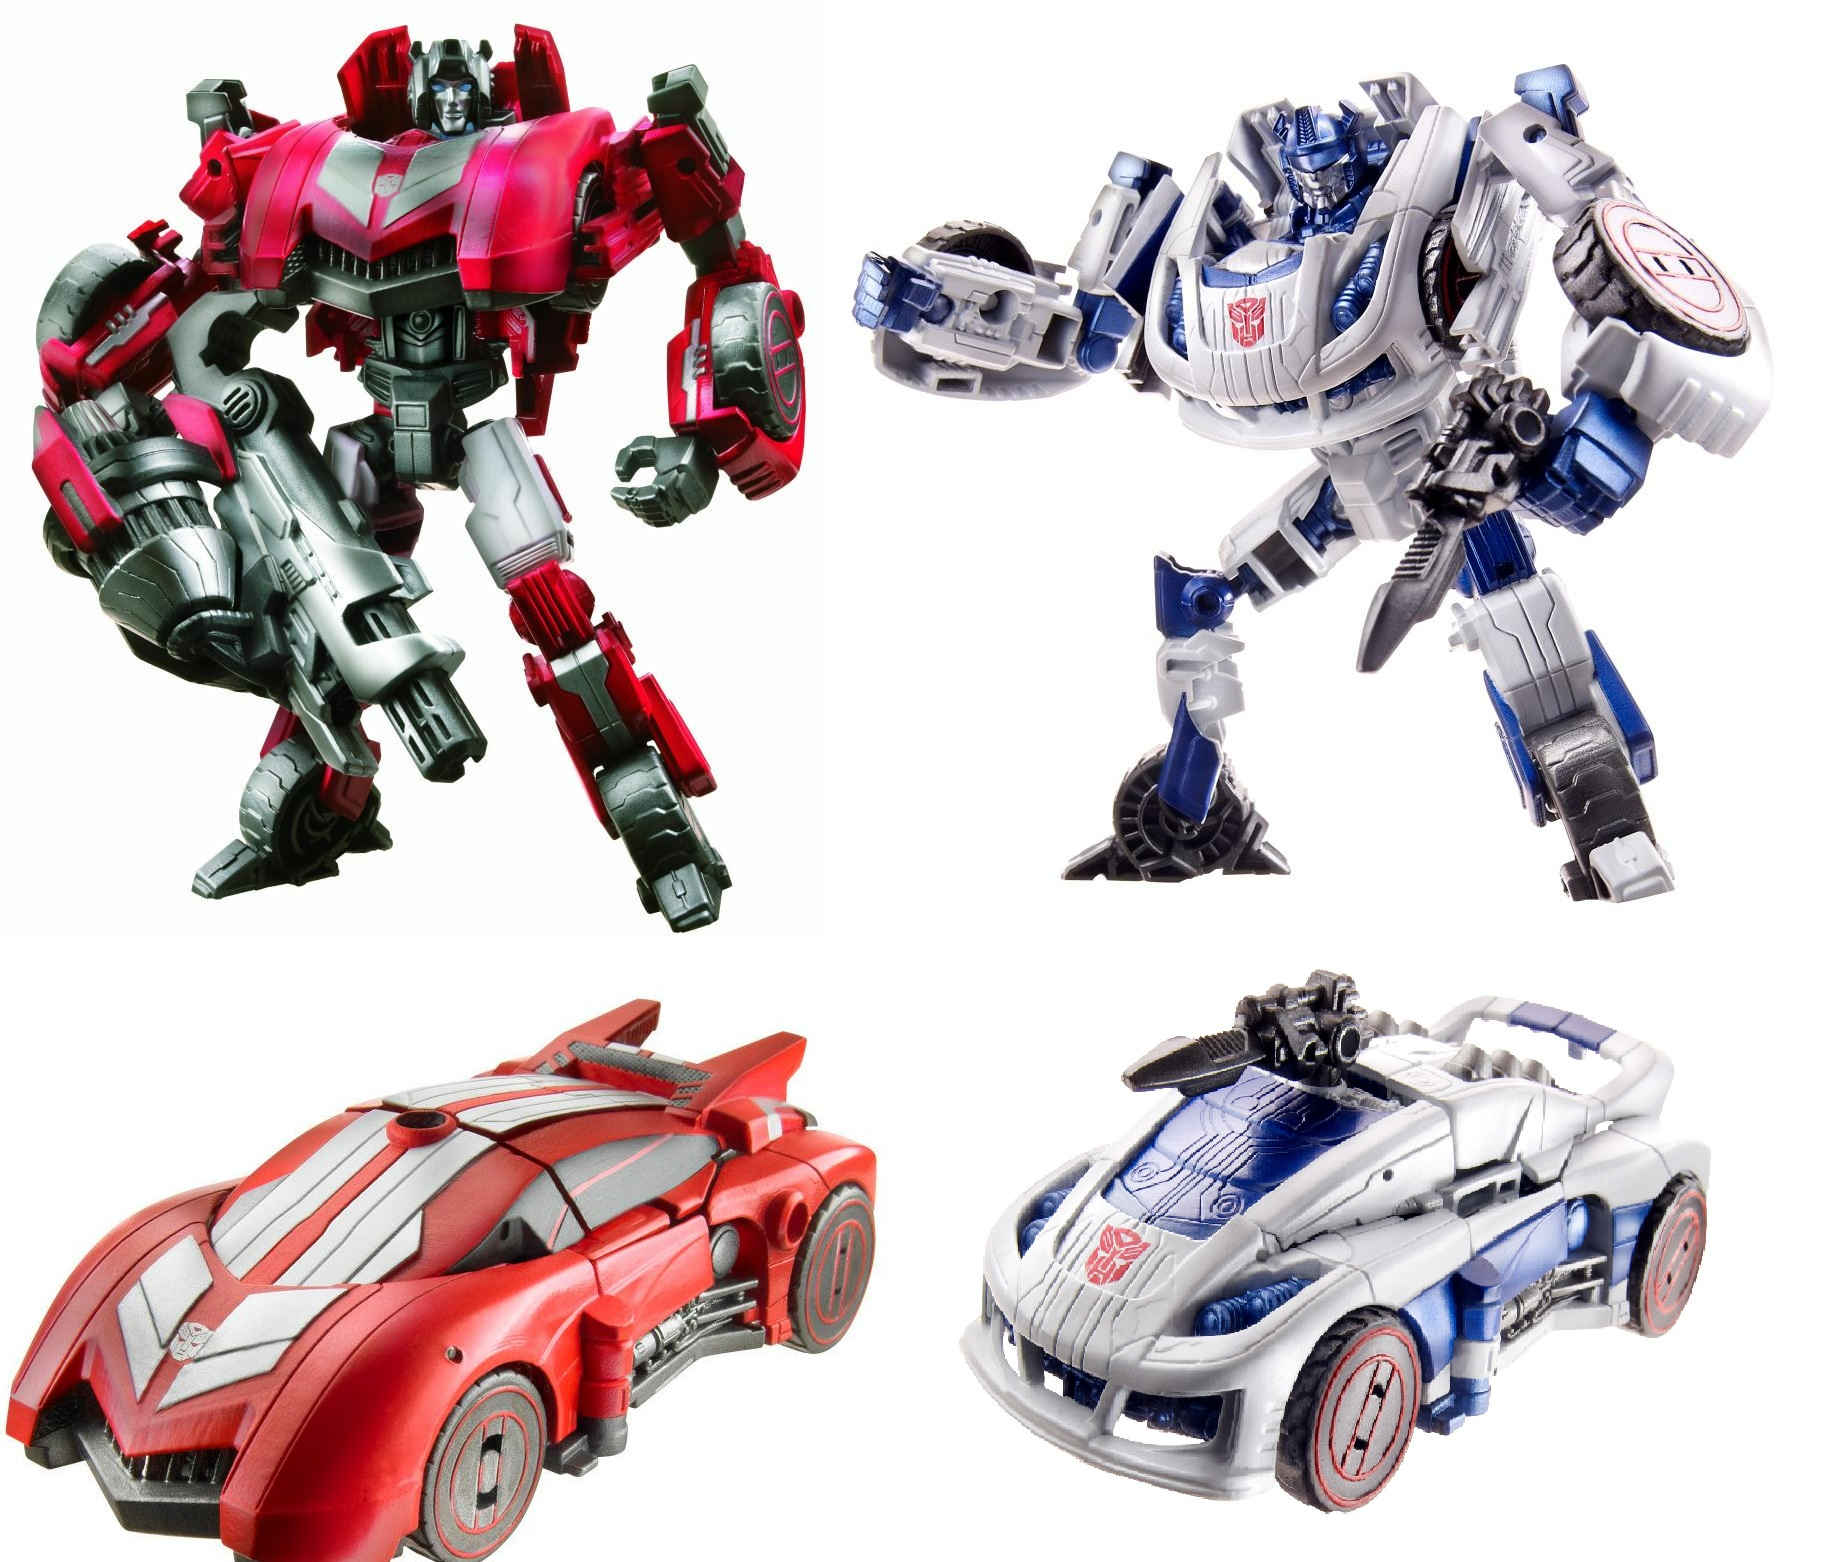 Transformers Fall of Cybertron Sideswipe and Jazz